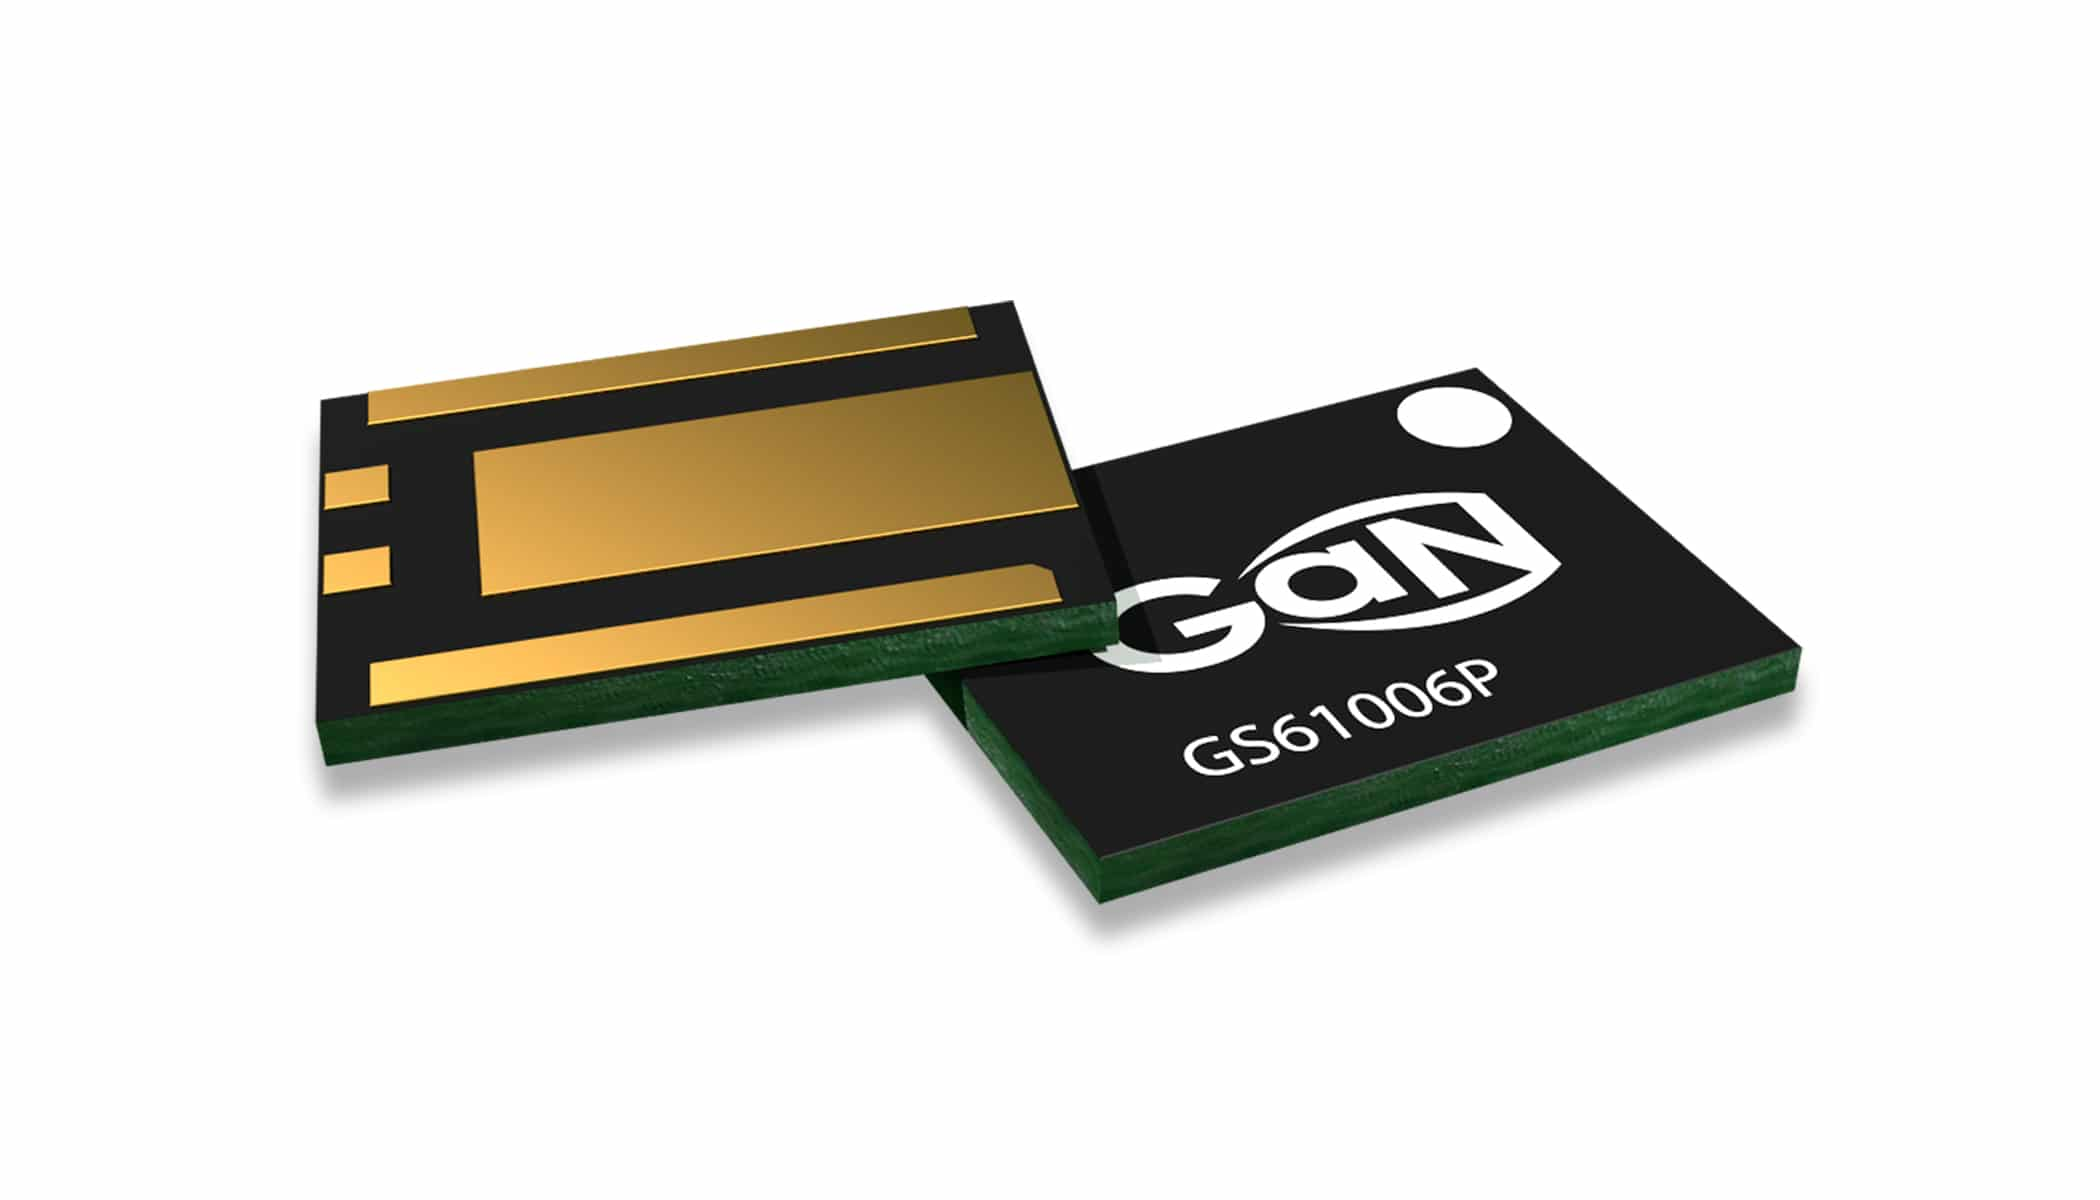 Passive Components challenges under the Gallium Nitride (GaN) transistor revolution